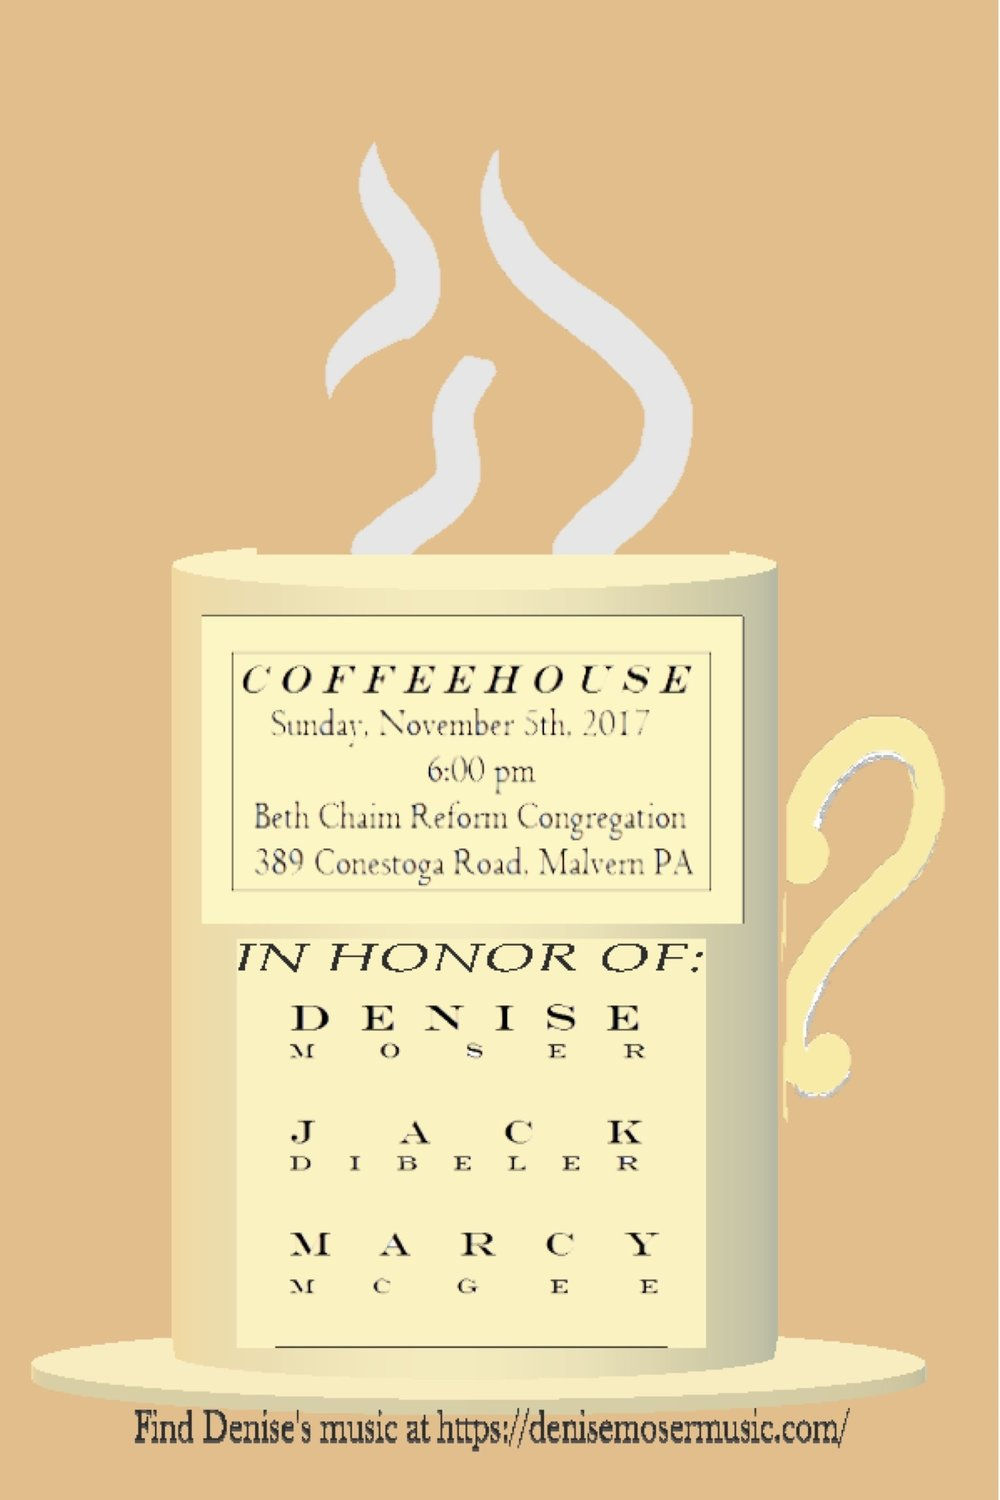 Coffeehouse Mailer 4x6 copy.jpg